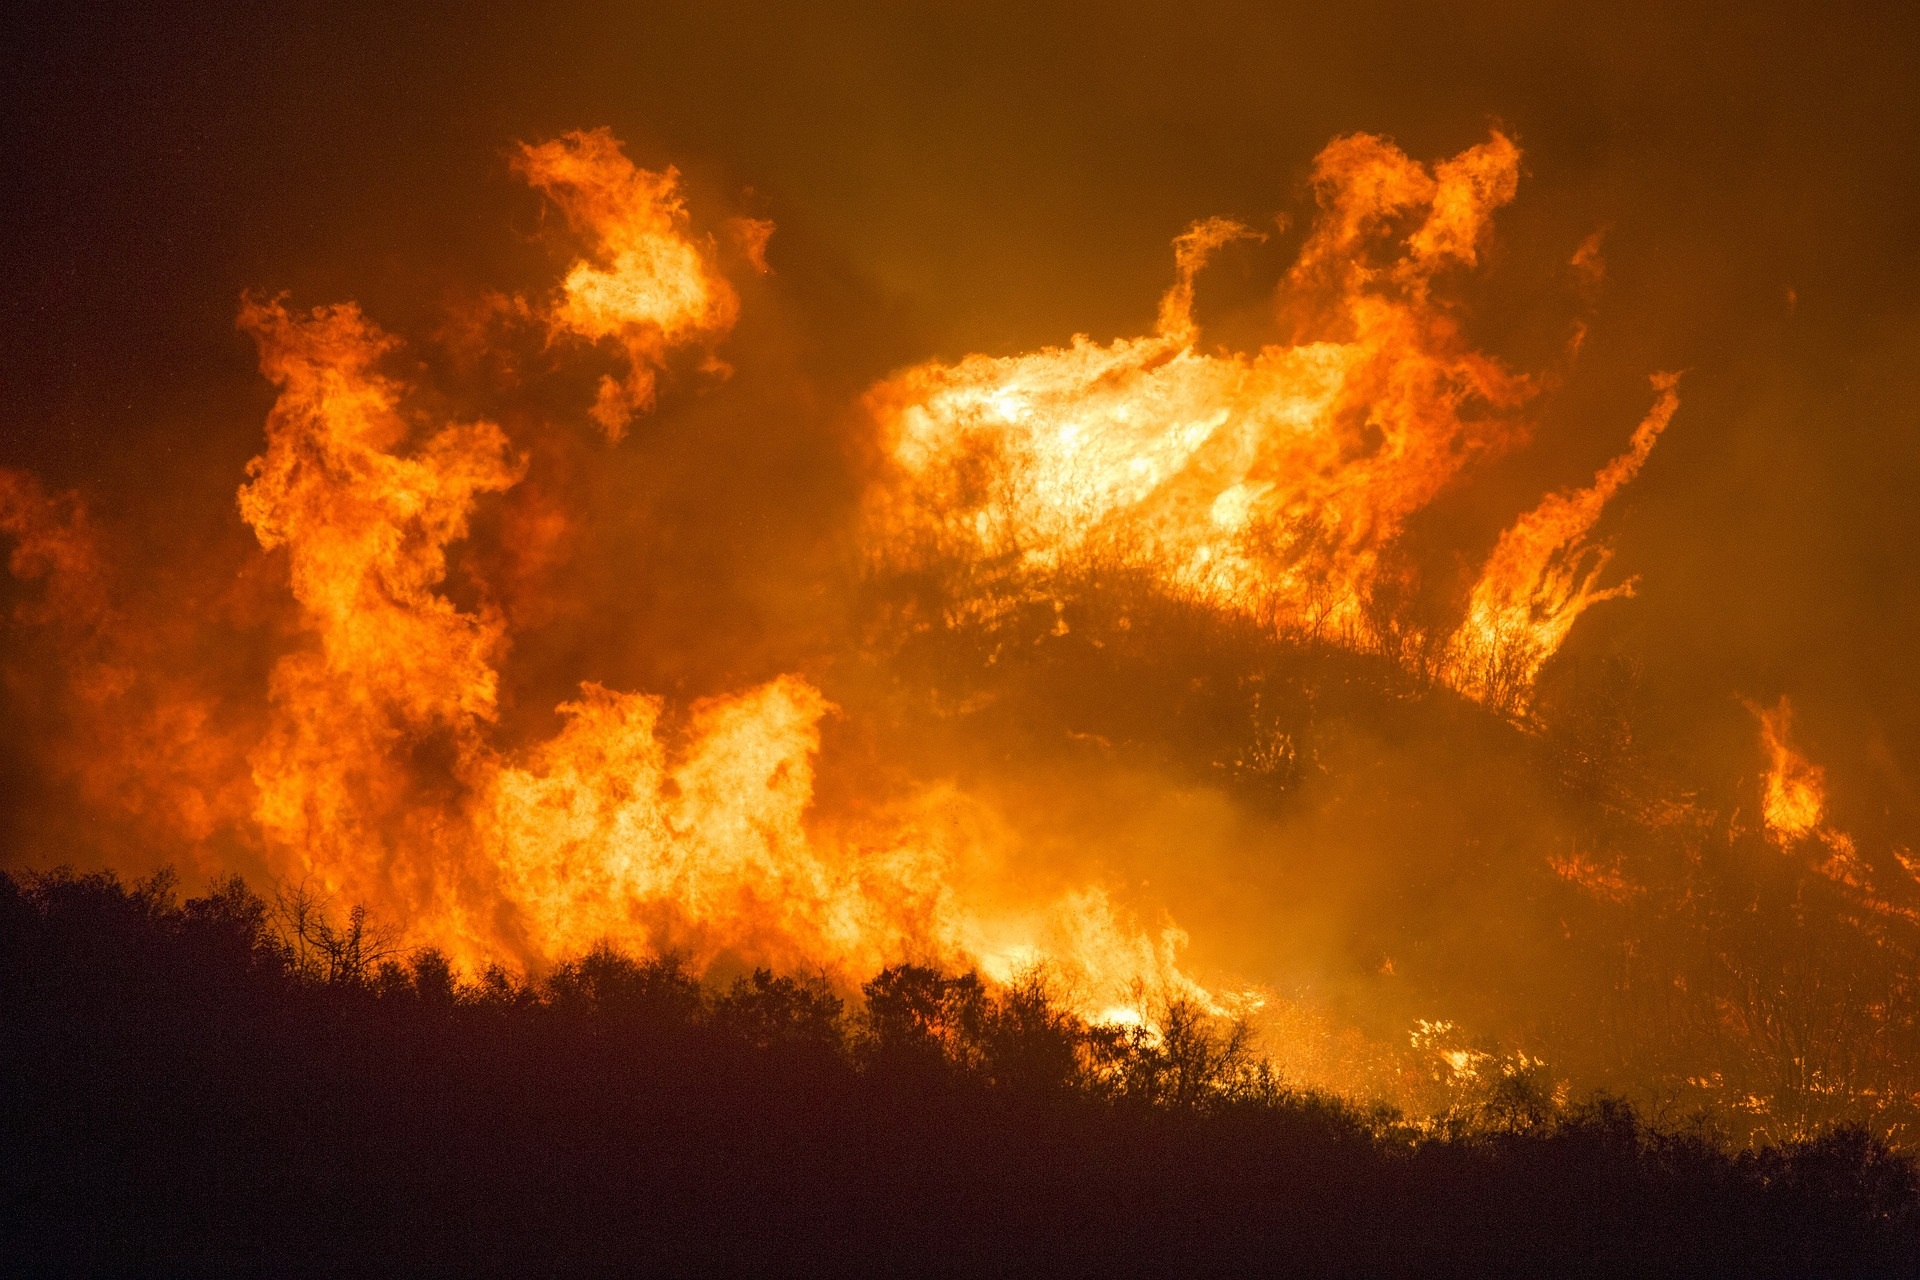 Ongoing West Coast Fires Are Affecting Cannabis Farms At Alarming Rates